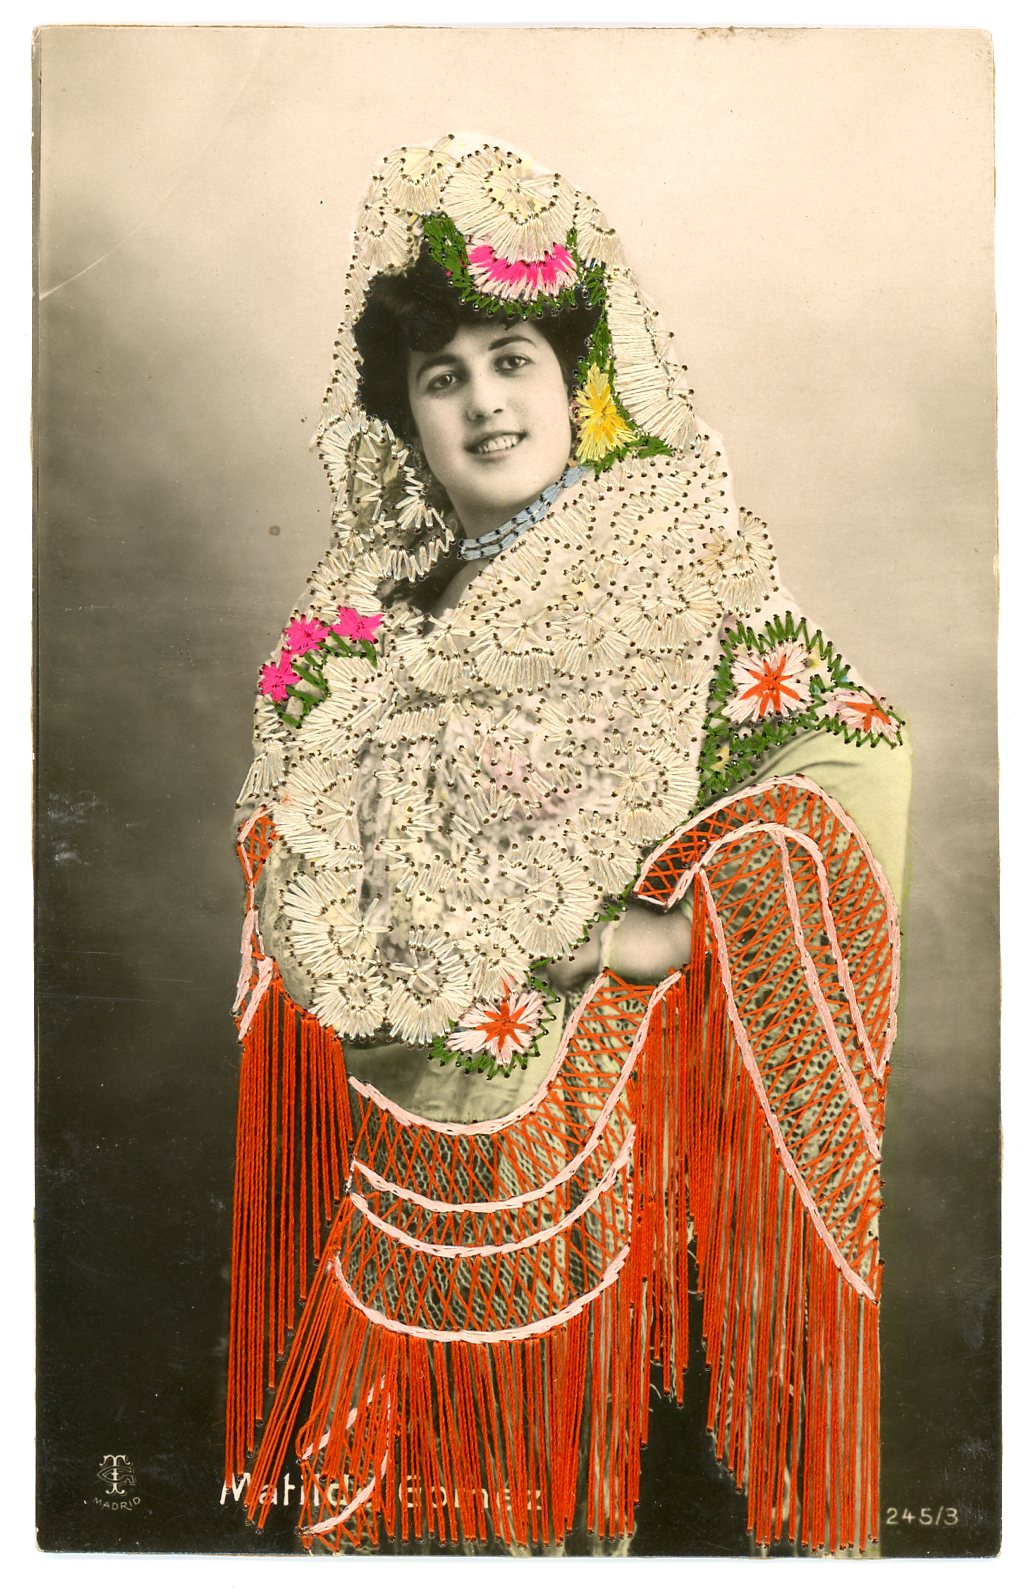 Embroidered photo postcard, Published by Singer Sewing Machines, Portugal, ca.1910